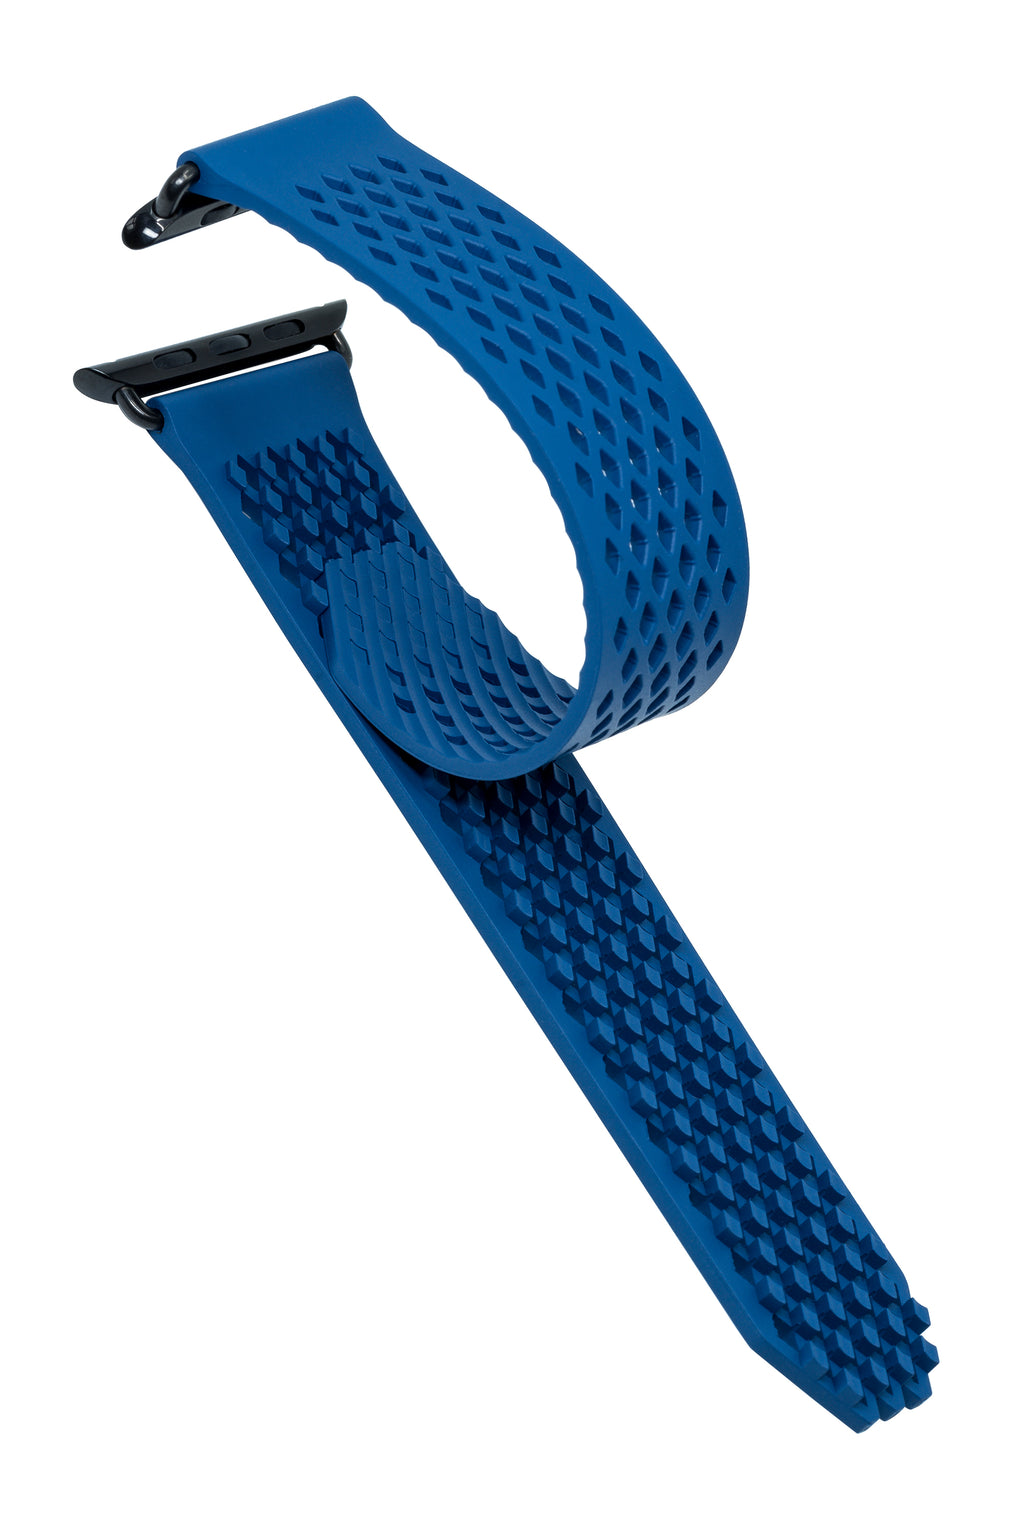 Noomoon LABB Interlocking Watch Strap for Apple Watch in BLUE with BLACK Hardware